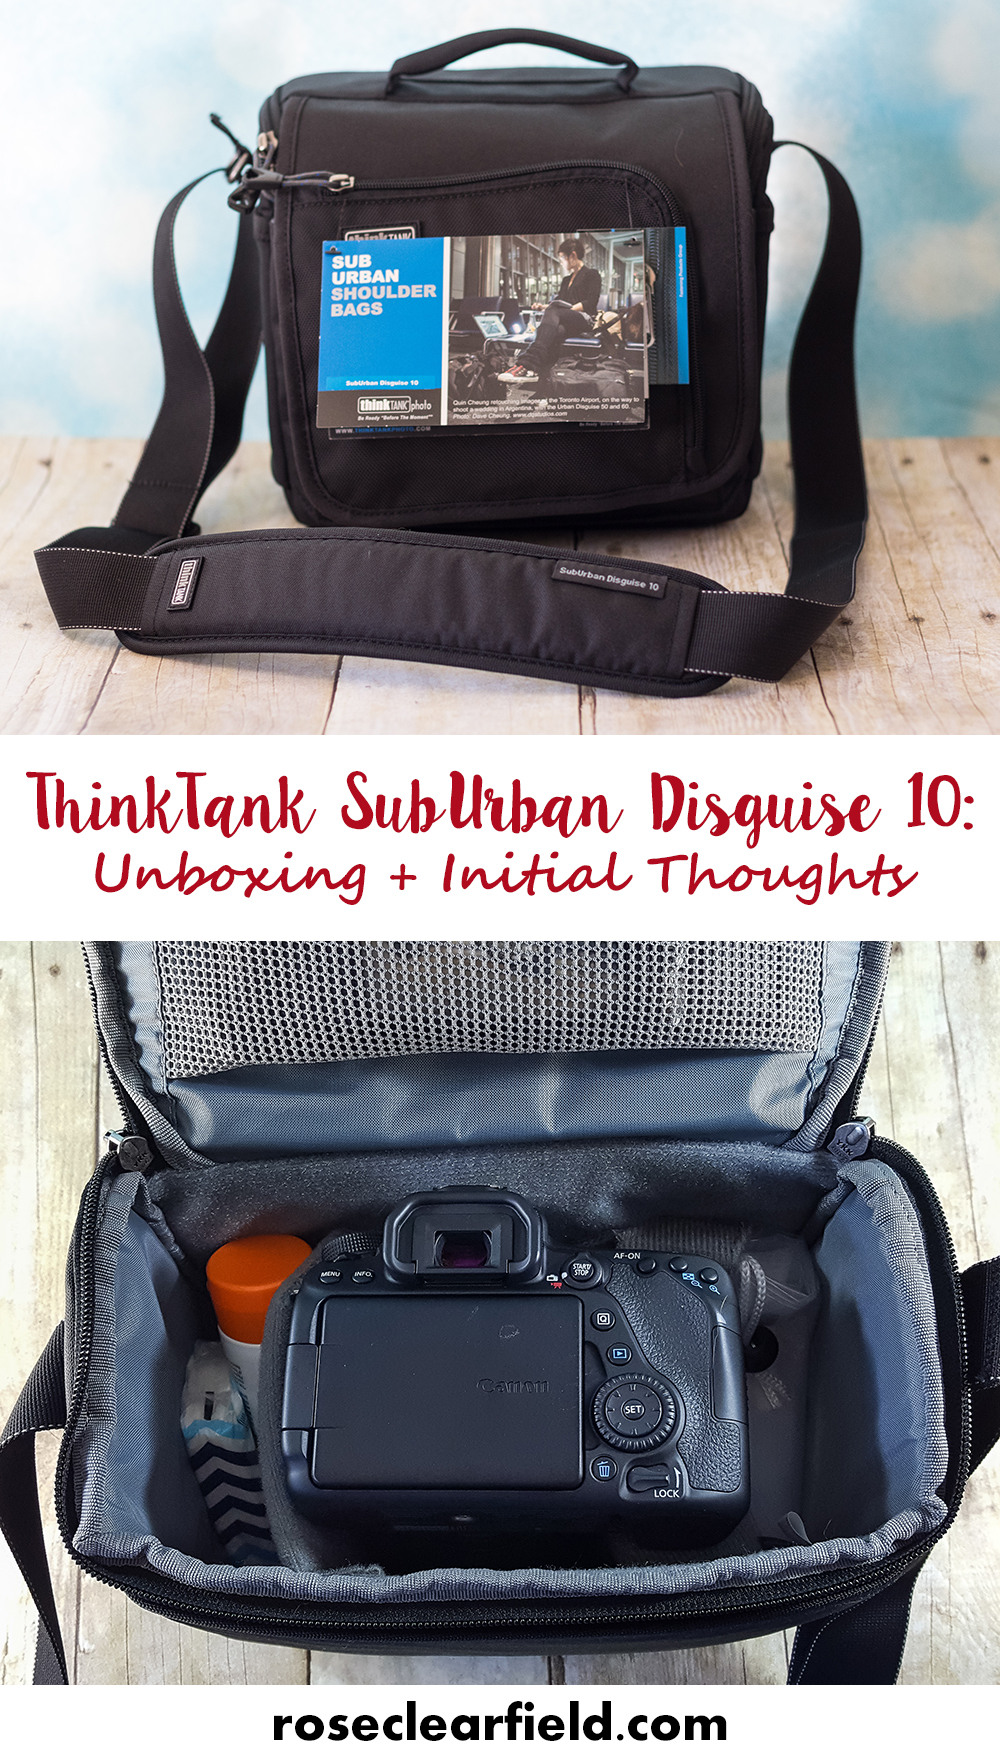 ThinkTank SubUrban Disguise Unboxing + Initial Thoughts | http://www.roseclearfield.com